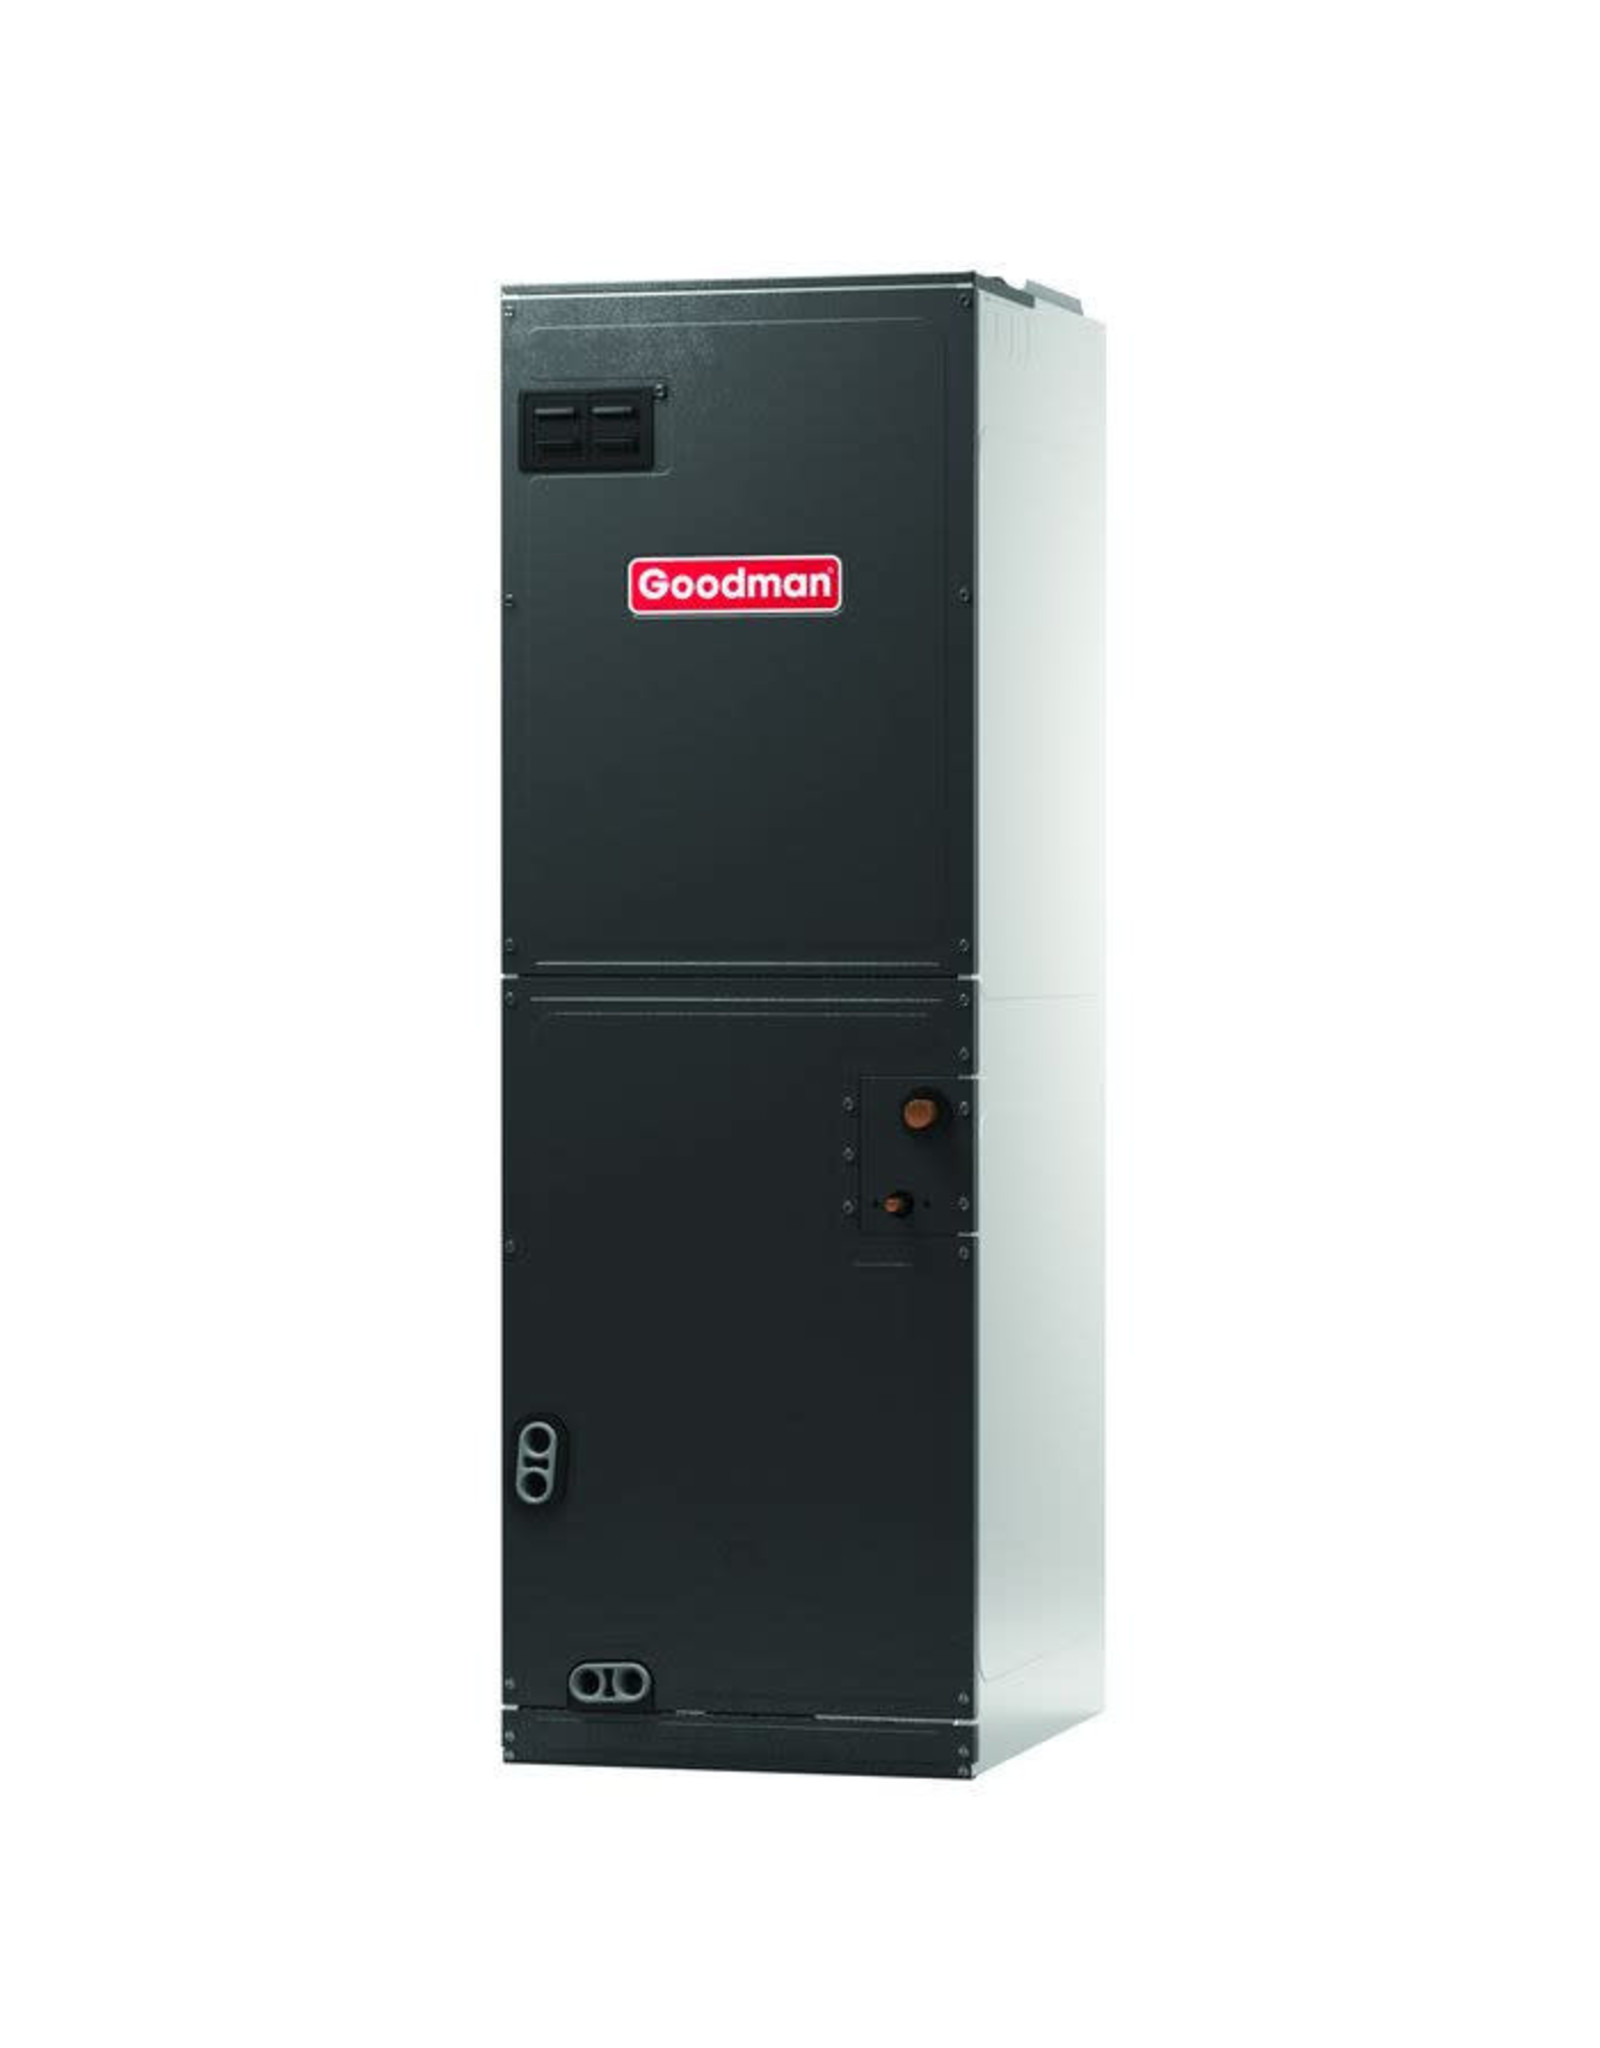 Goodman Split System Convertible AHU Applicable to 5 Tons